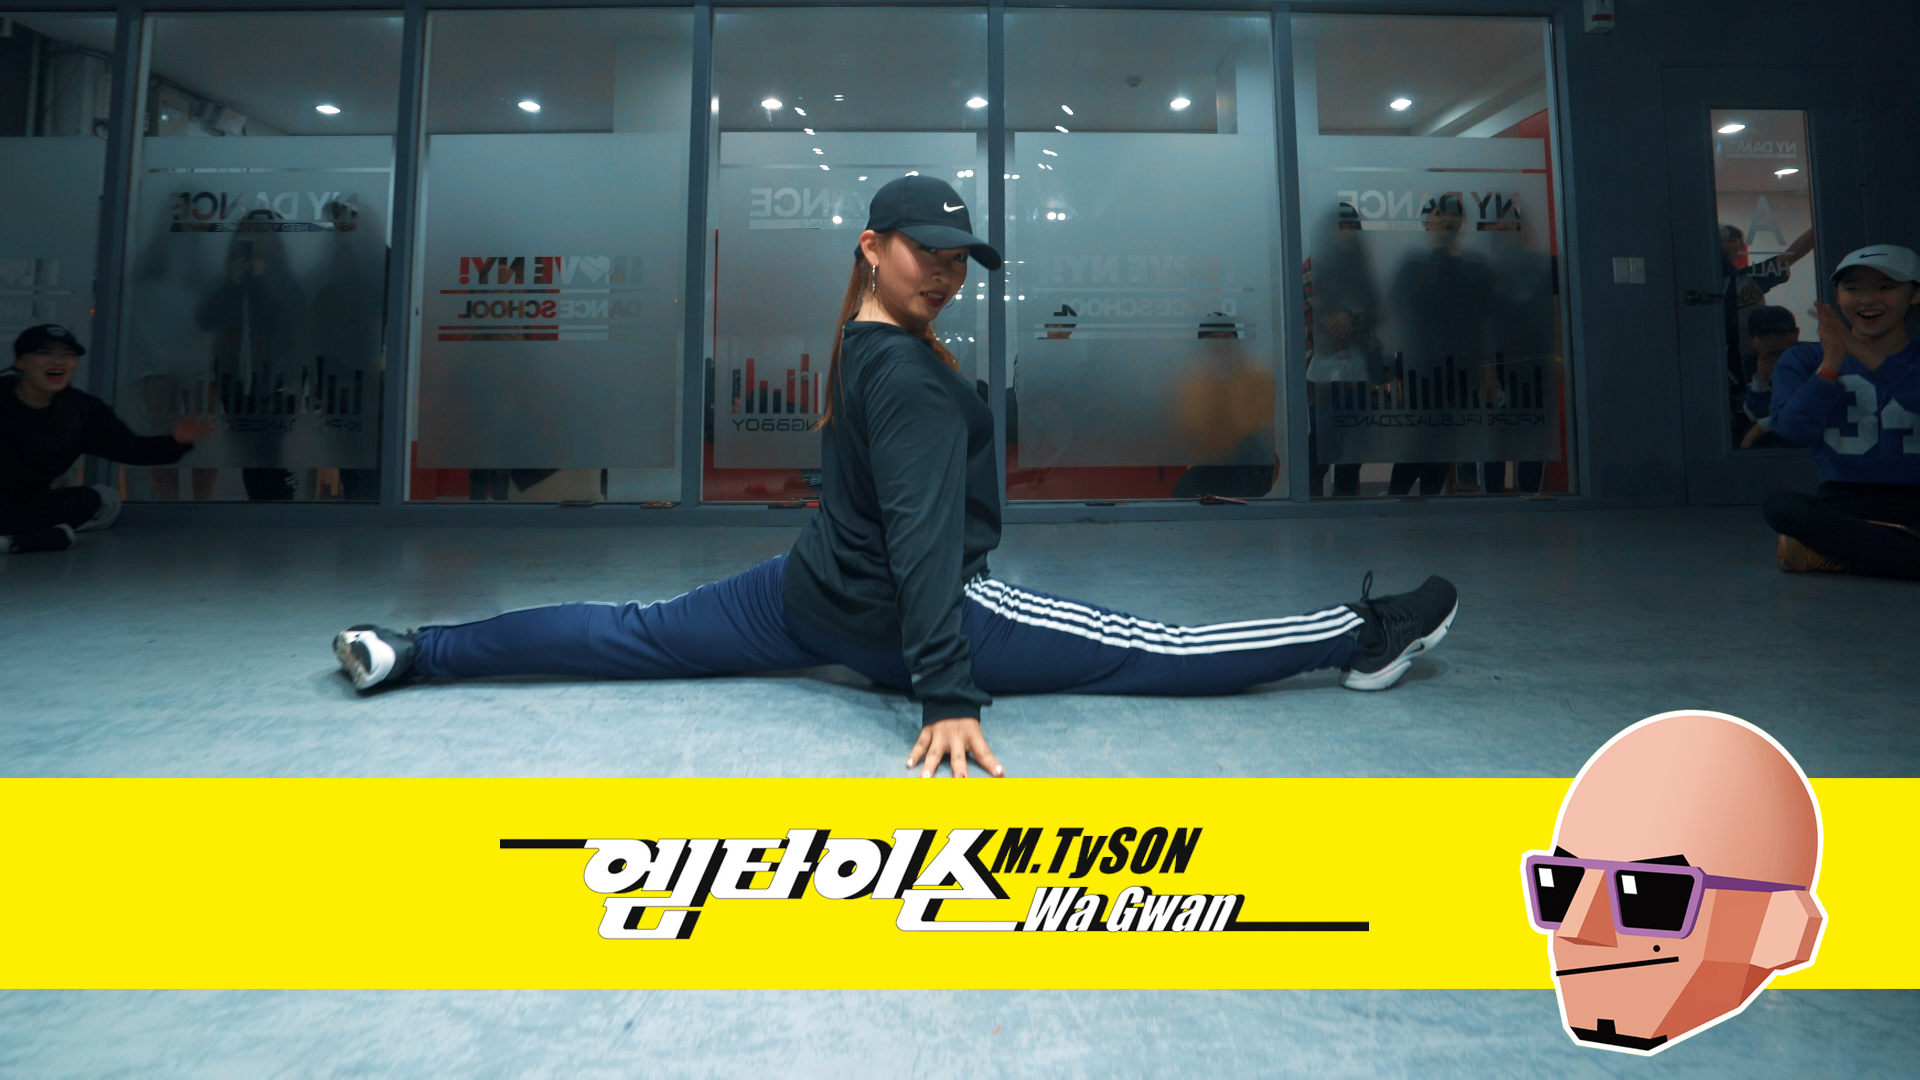 엠타이슨(M.Tyson) – WA GWAN EVERY BODY (Dance. J-fire)